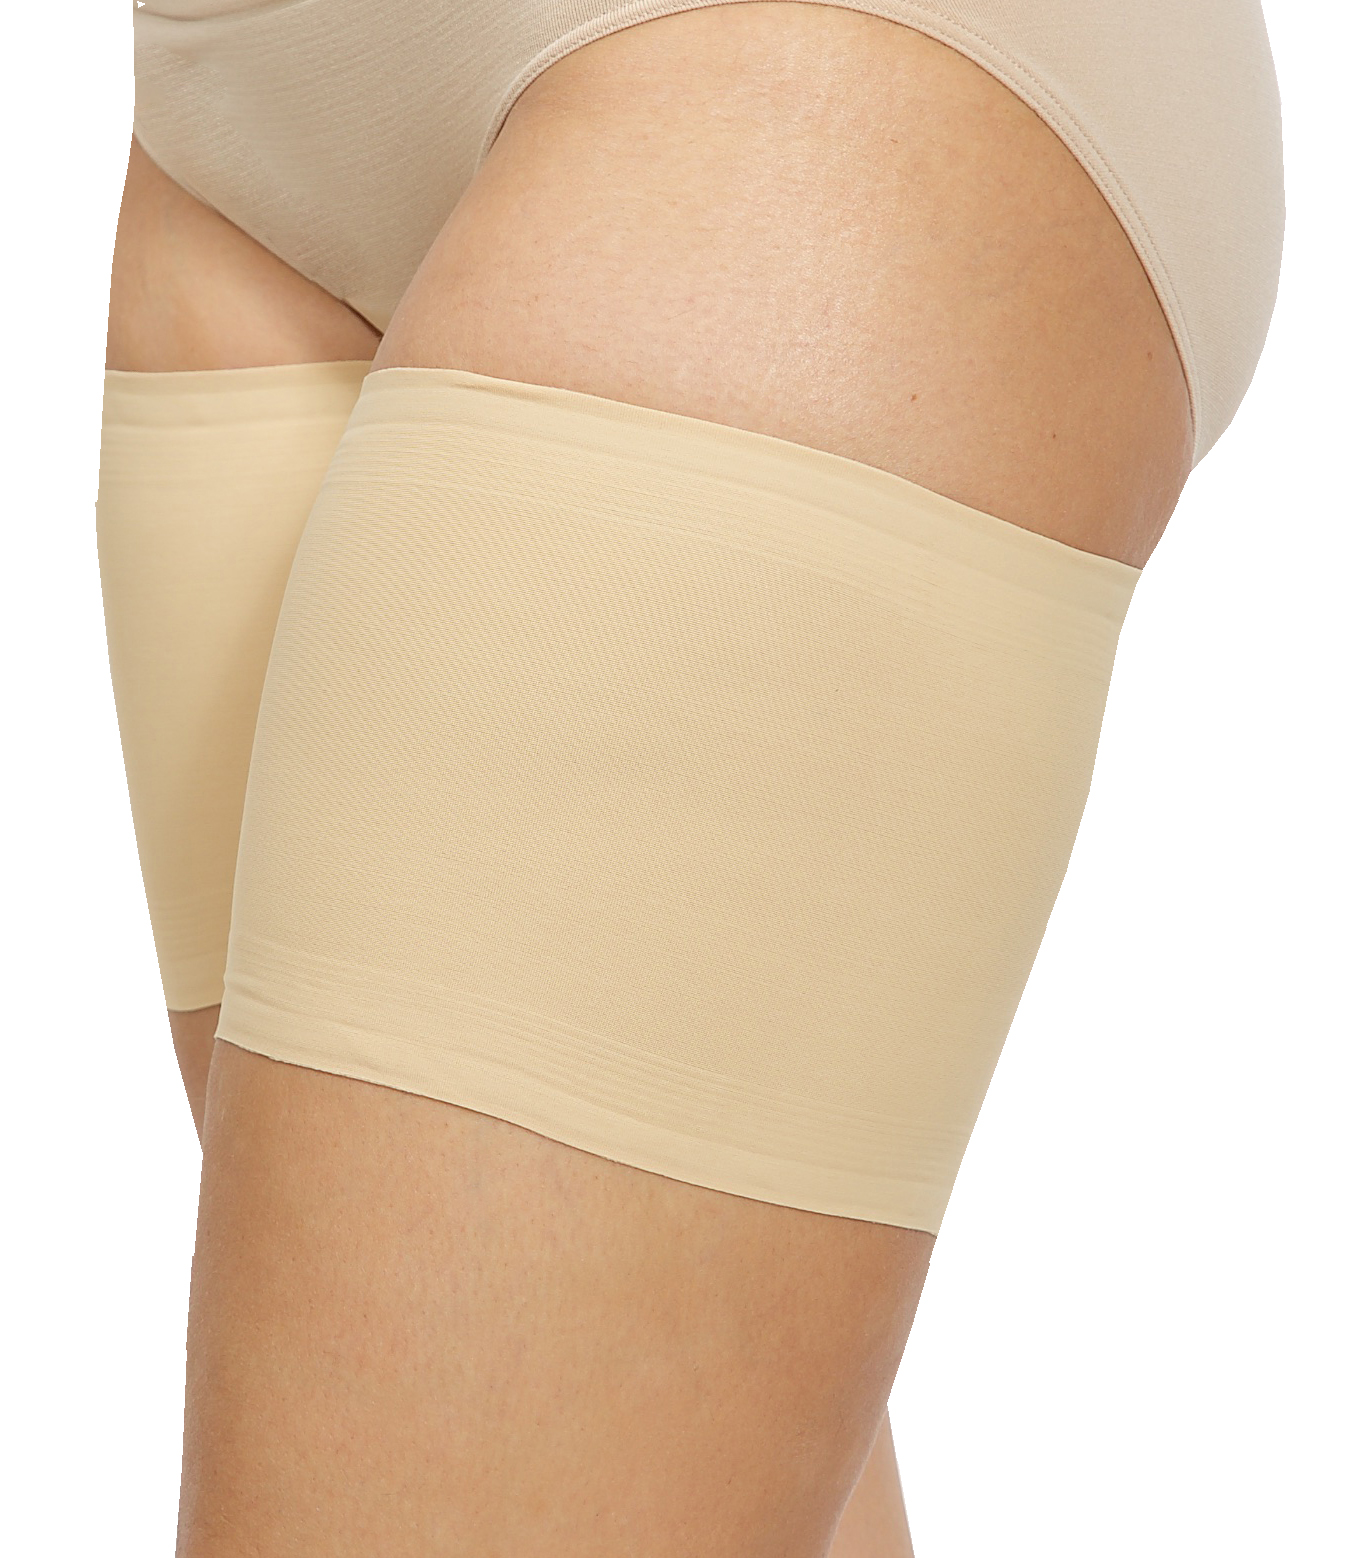 Beige Size D Women/'s Elastic Anti-Chafing Thigh Bands Unisex